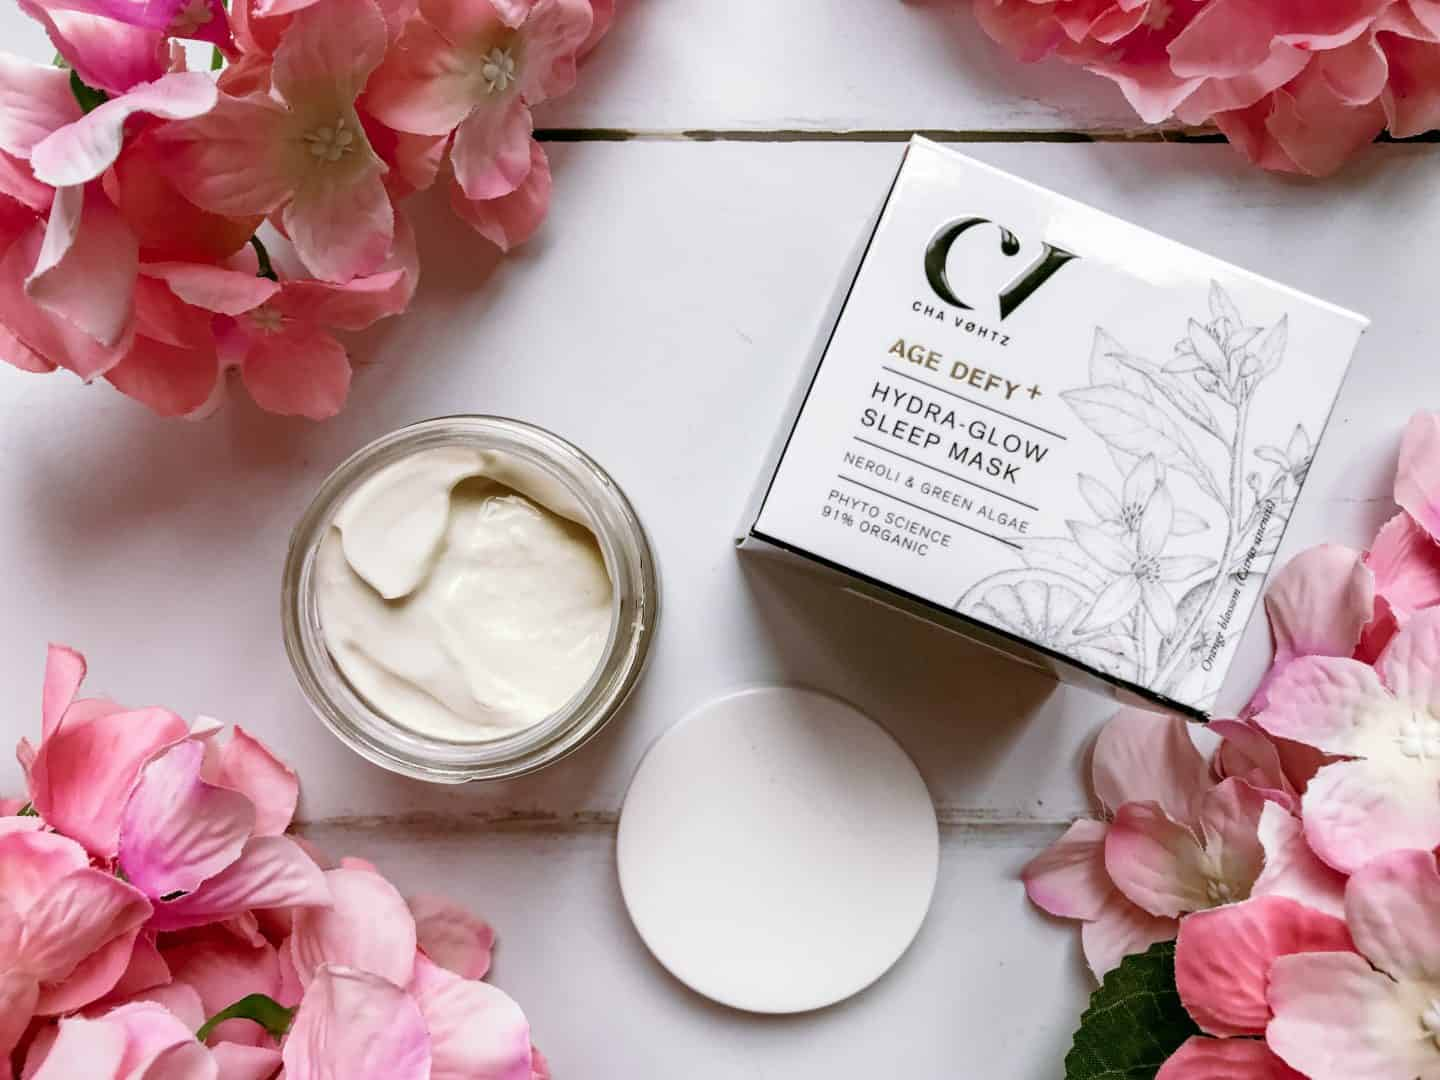 Organic Skincare for 35+ from Green People- Age Defy+ by Cha Vøhtz Hydra-Glow Sleep Mask review